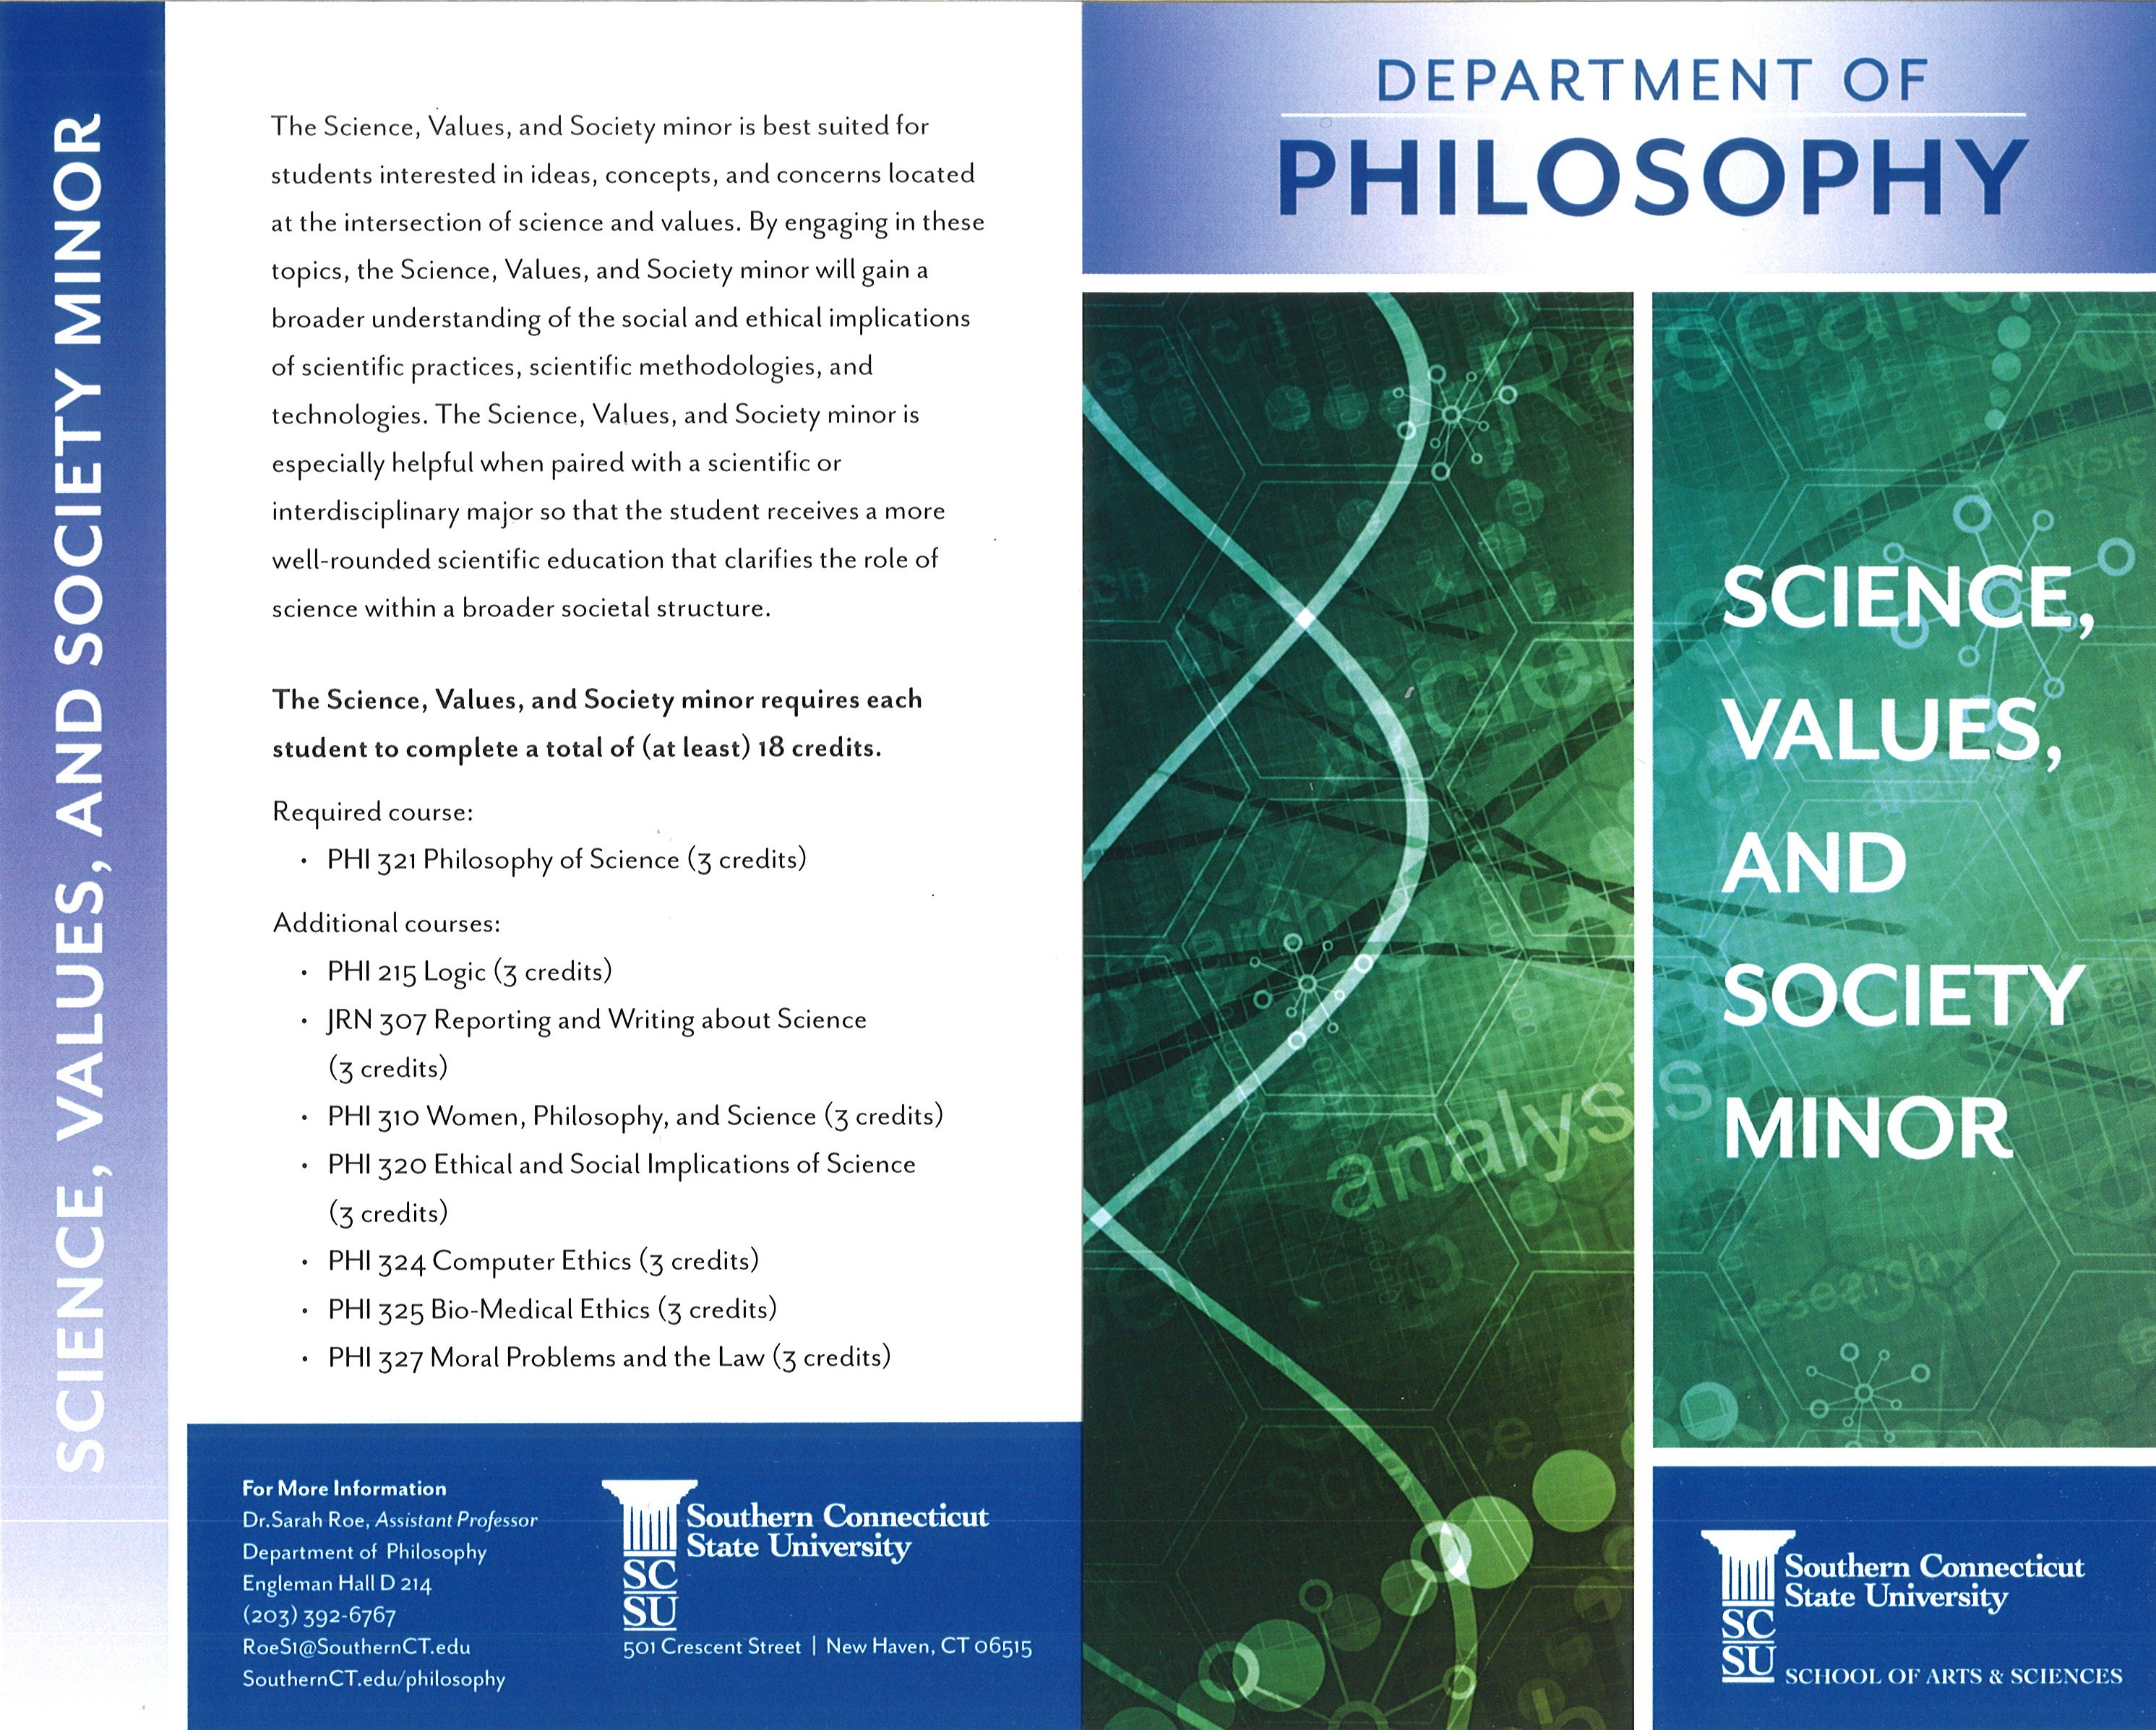 Image of Brochure for Science, Values, and Society Minor